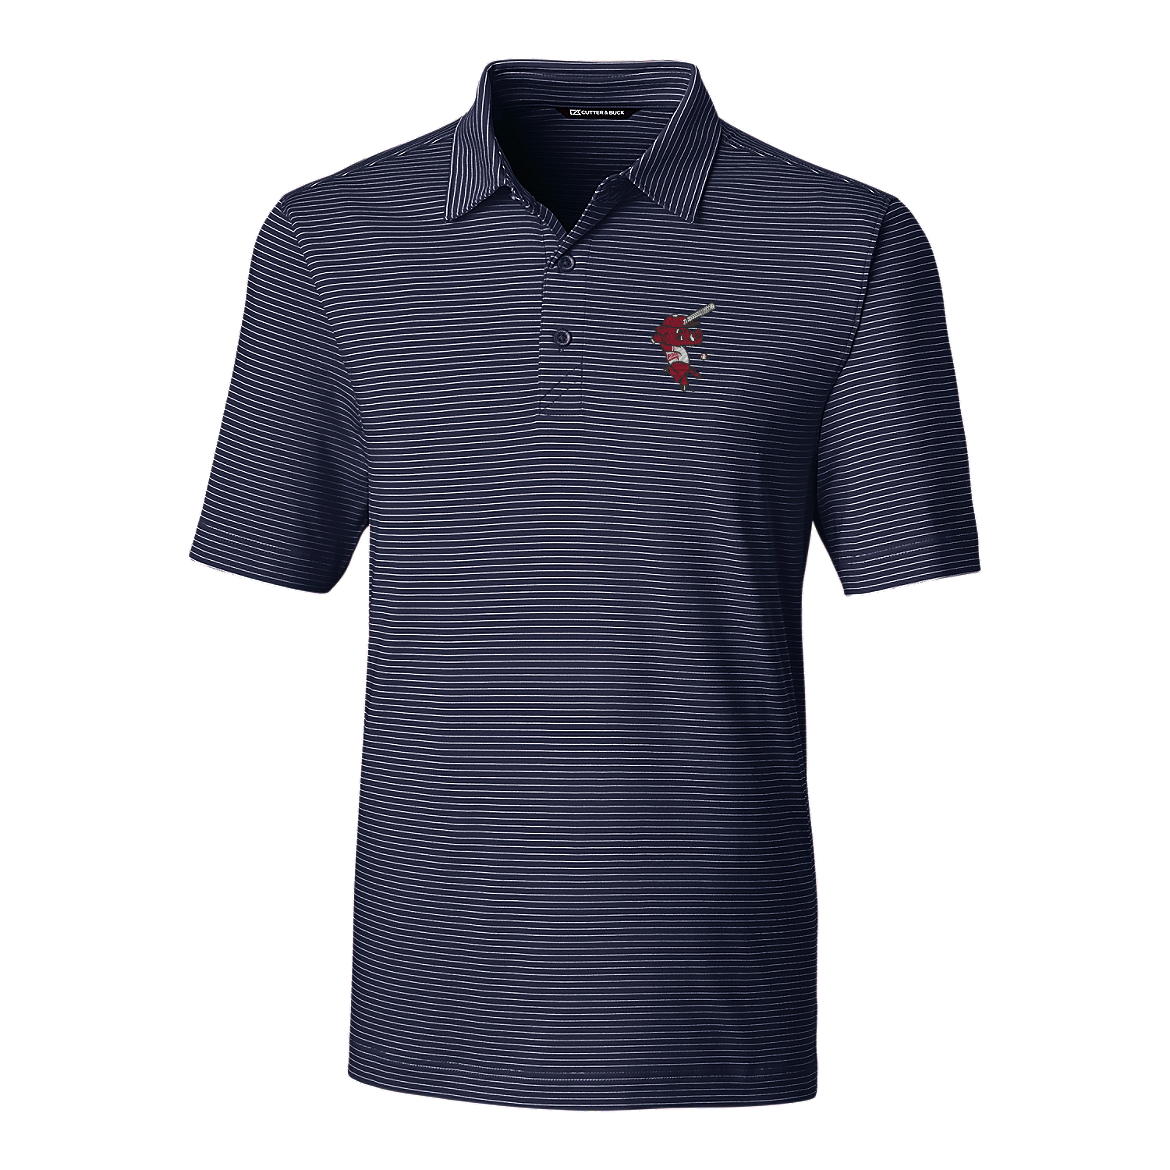 Cutter & Buck Ribby Forge Pencil Stripe Polo By Cutter & Buck